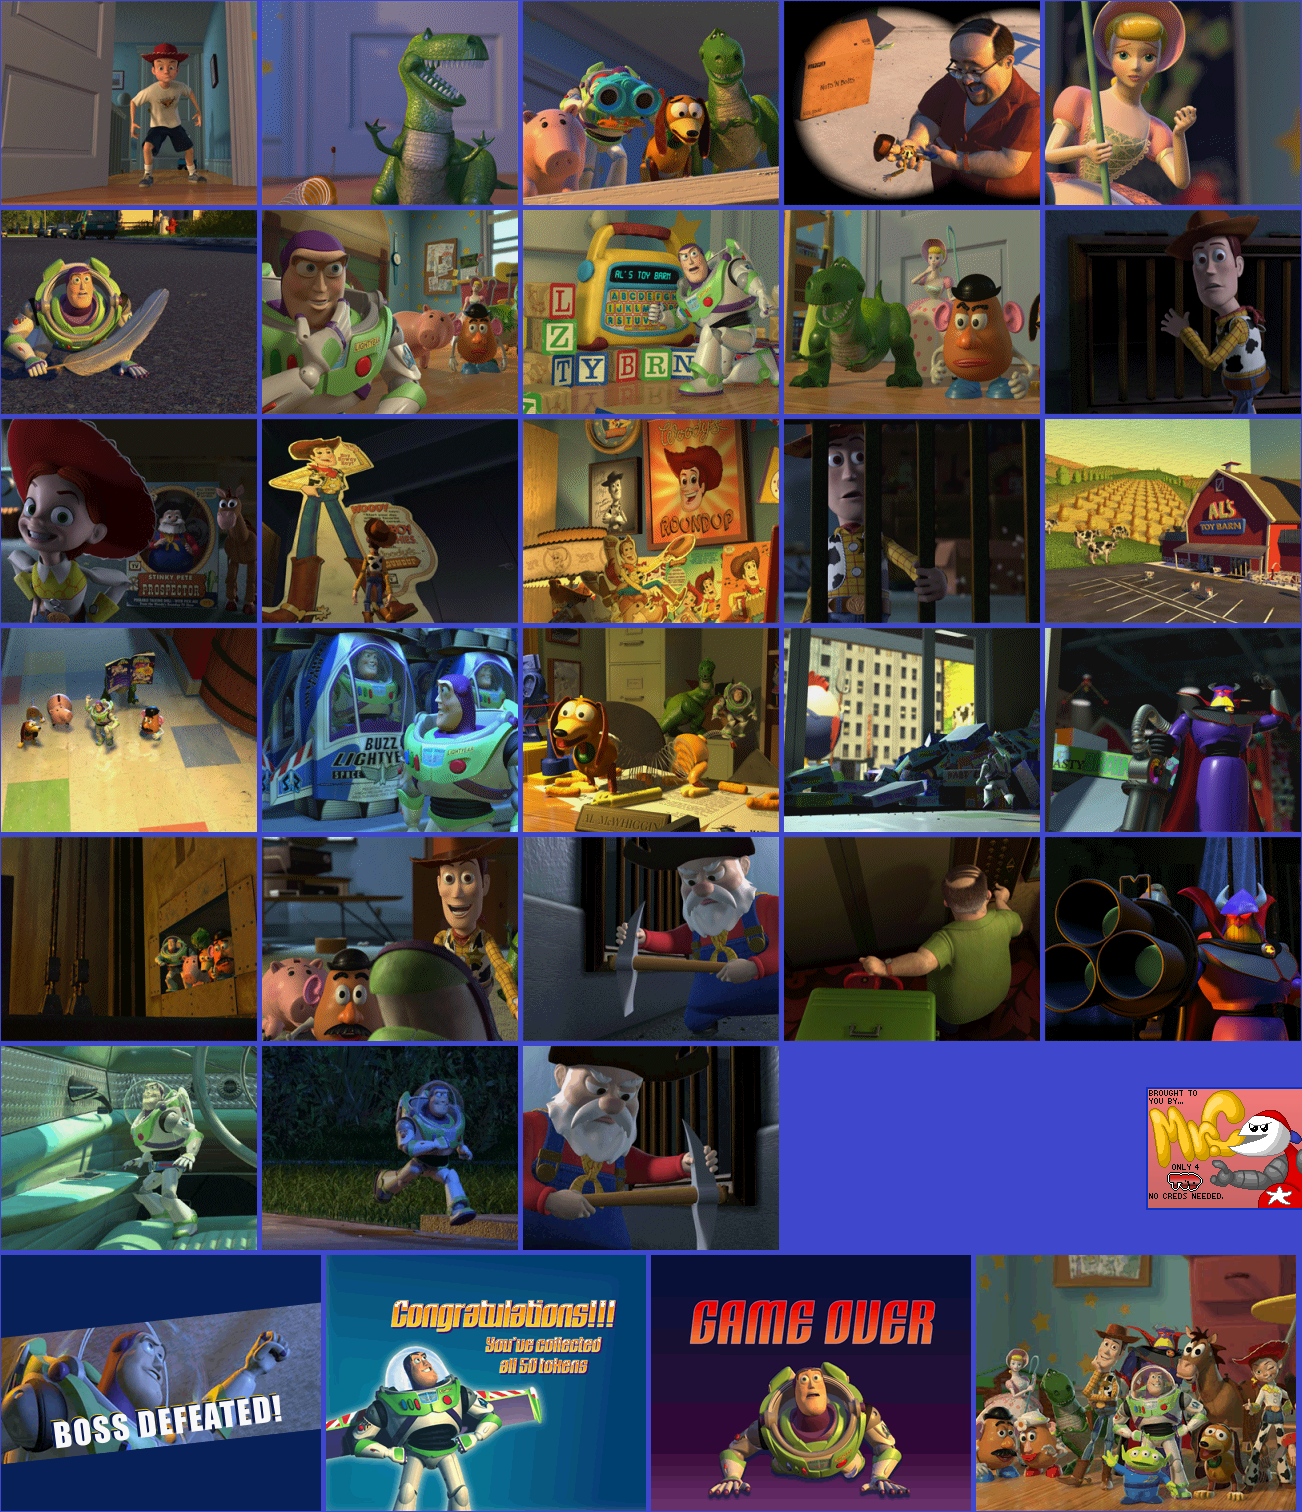 Nintendo 64 - Toy Story 2: Buzz Lightyear to the Rescue